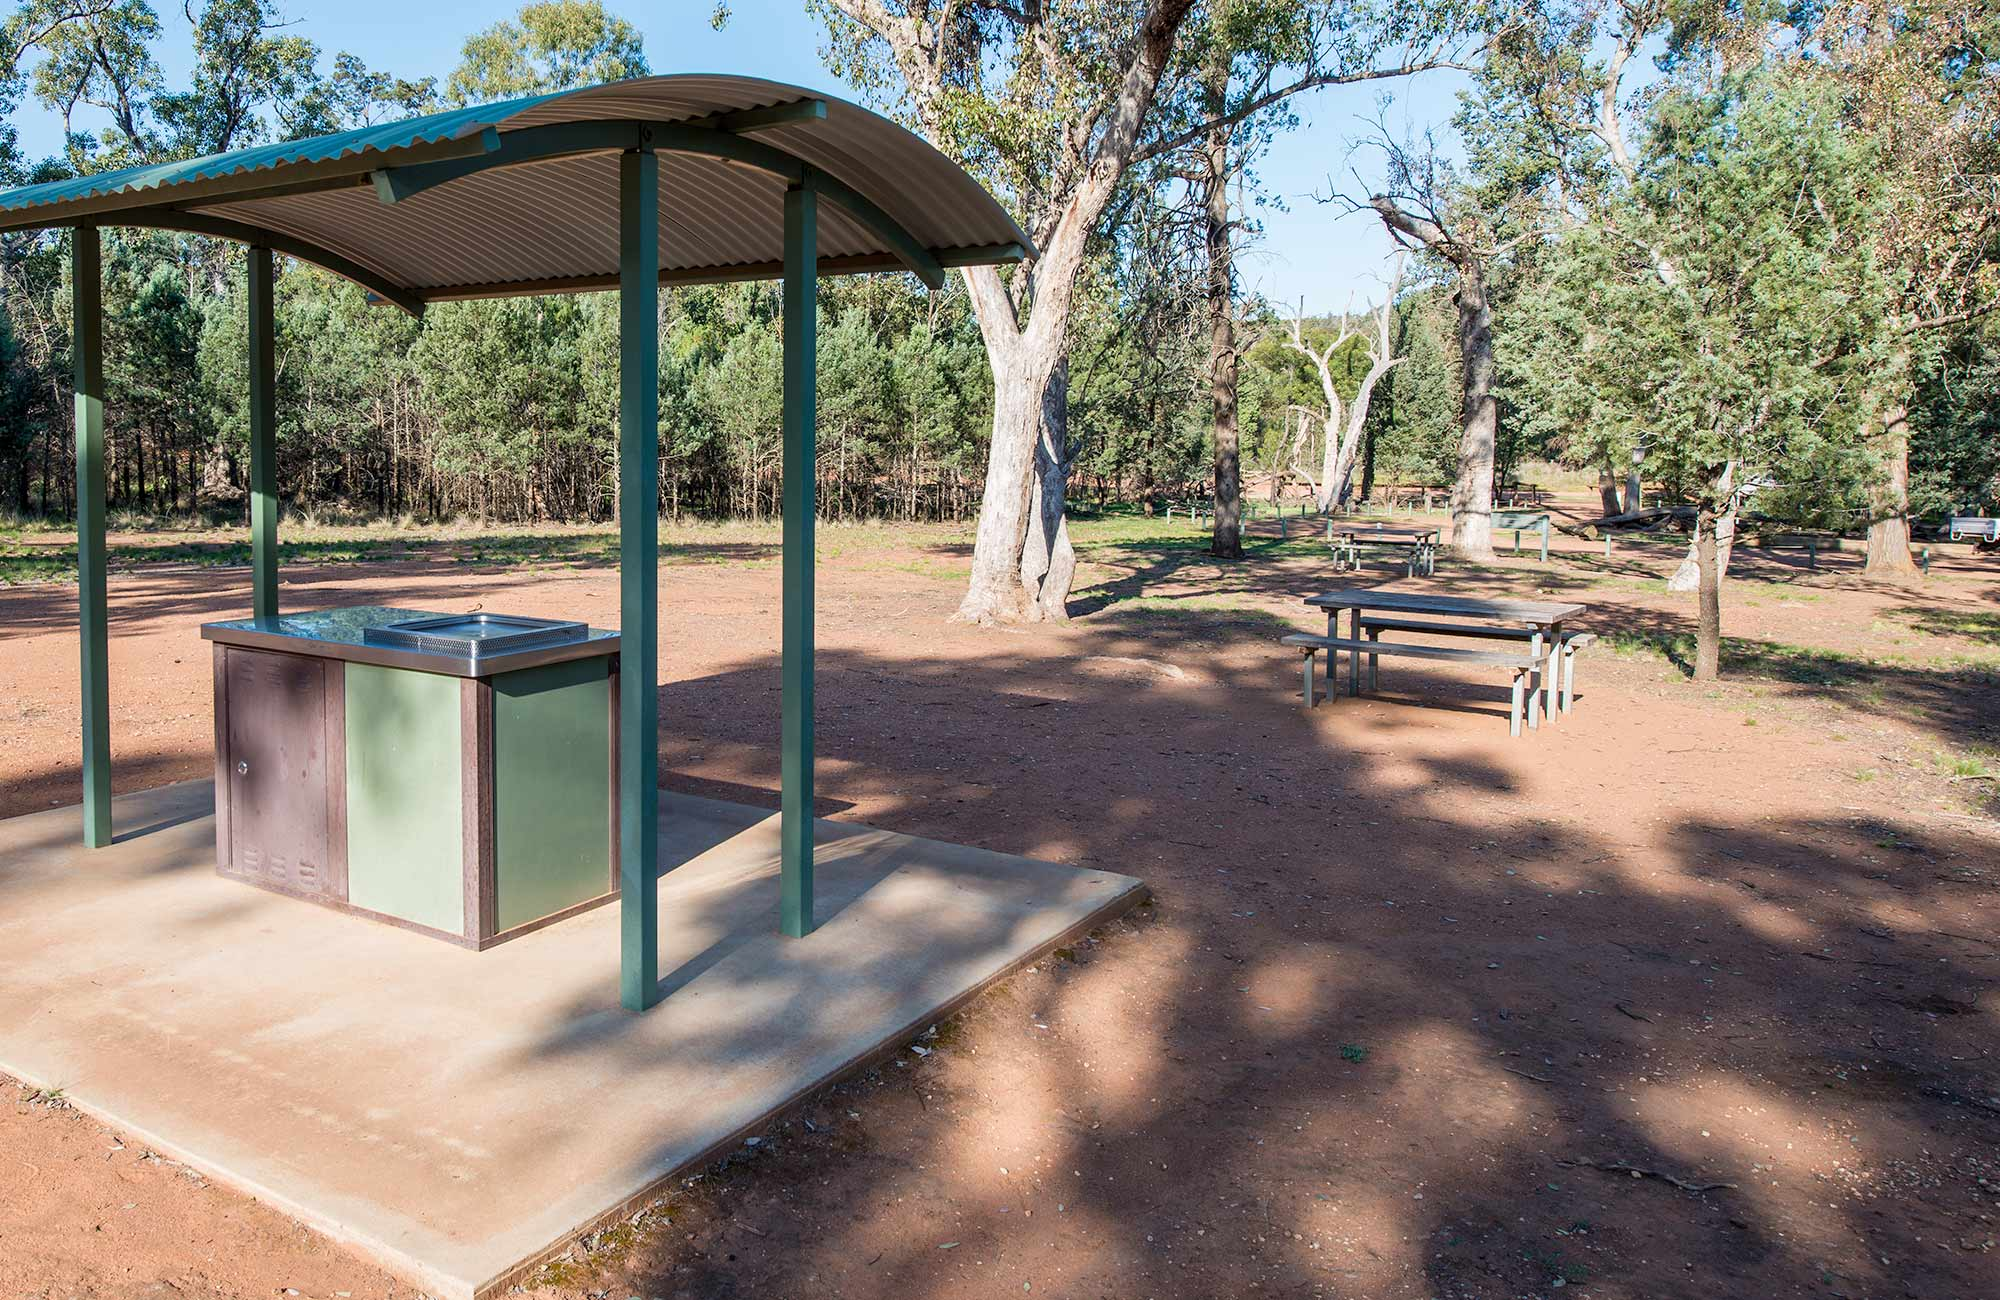 Spring Hill picnic area, Cocoparra National Park. Photo: John Spencer